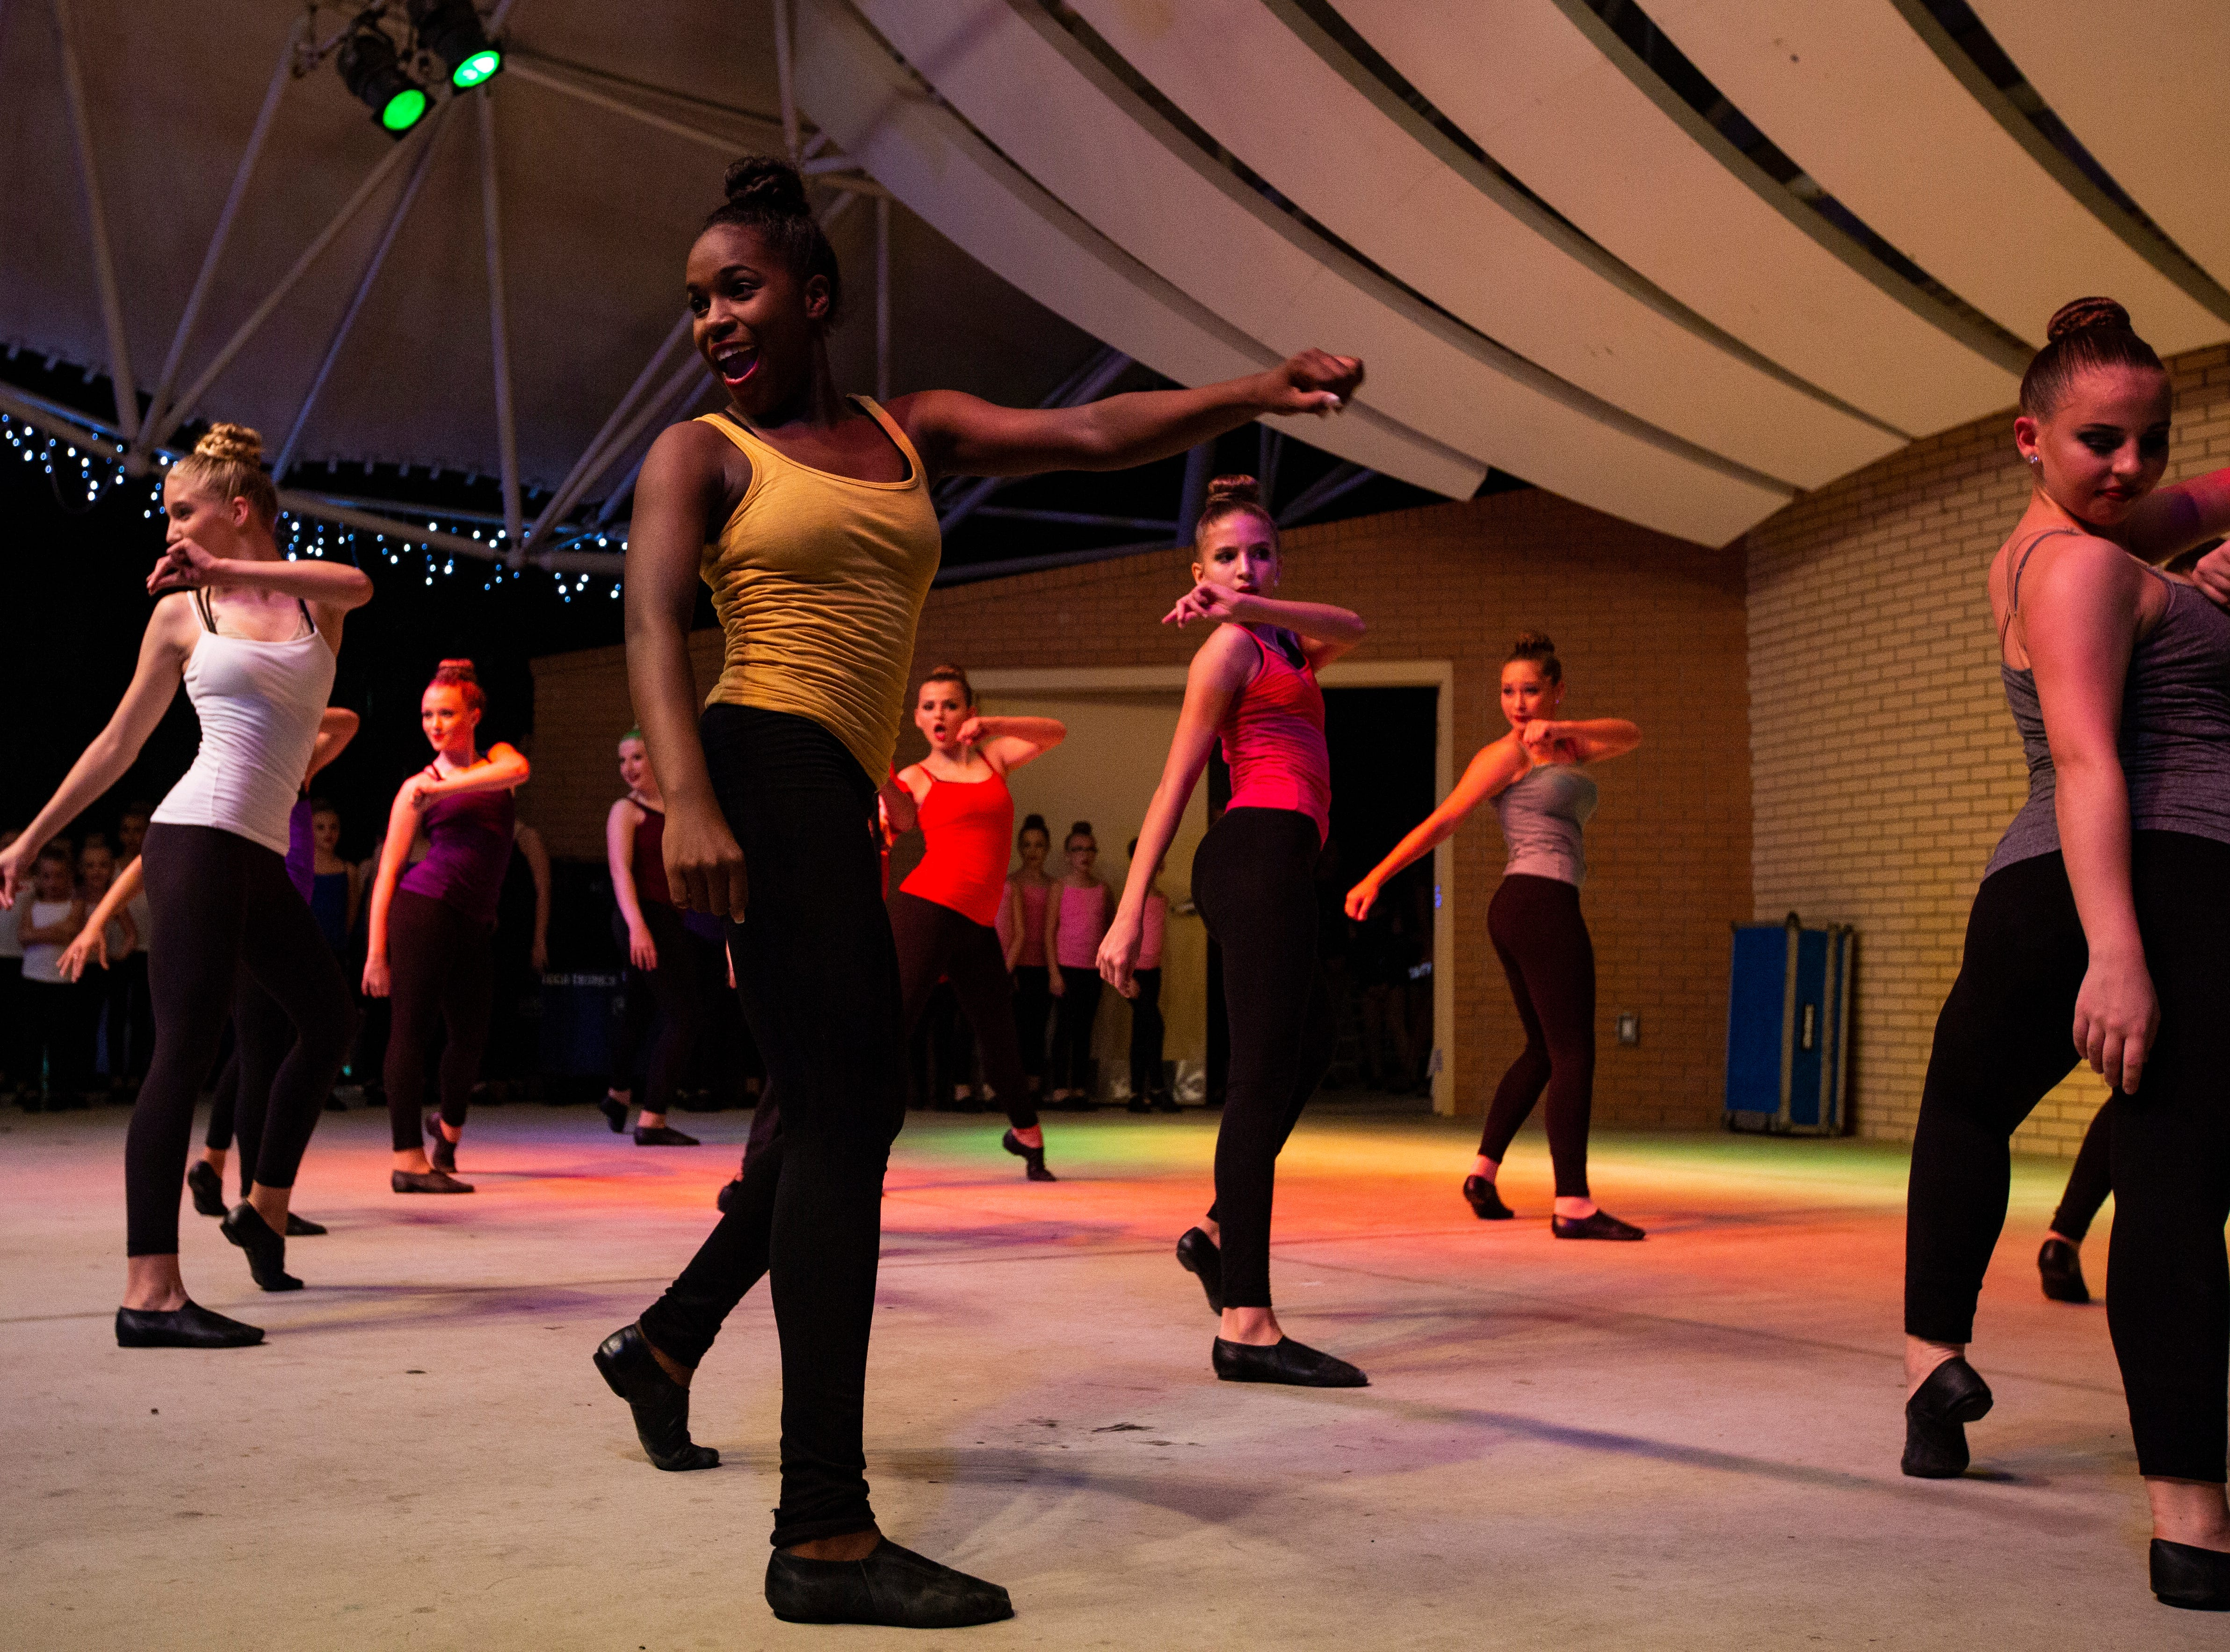 Dancers from Dance City Productions in Naples put on a show with holiday music at the 19th annual Holiday in the Park on Dec. 4, 2018 at the Riverside Park in Bonita Springs.